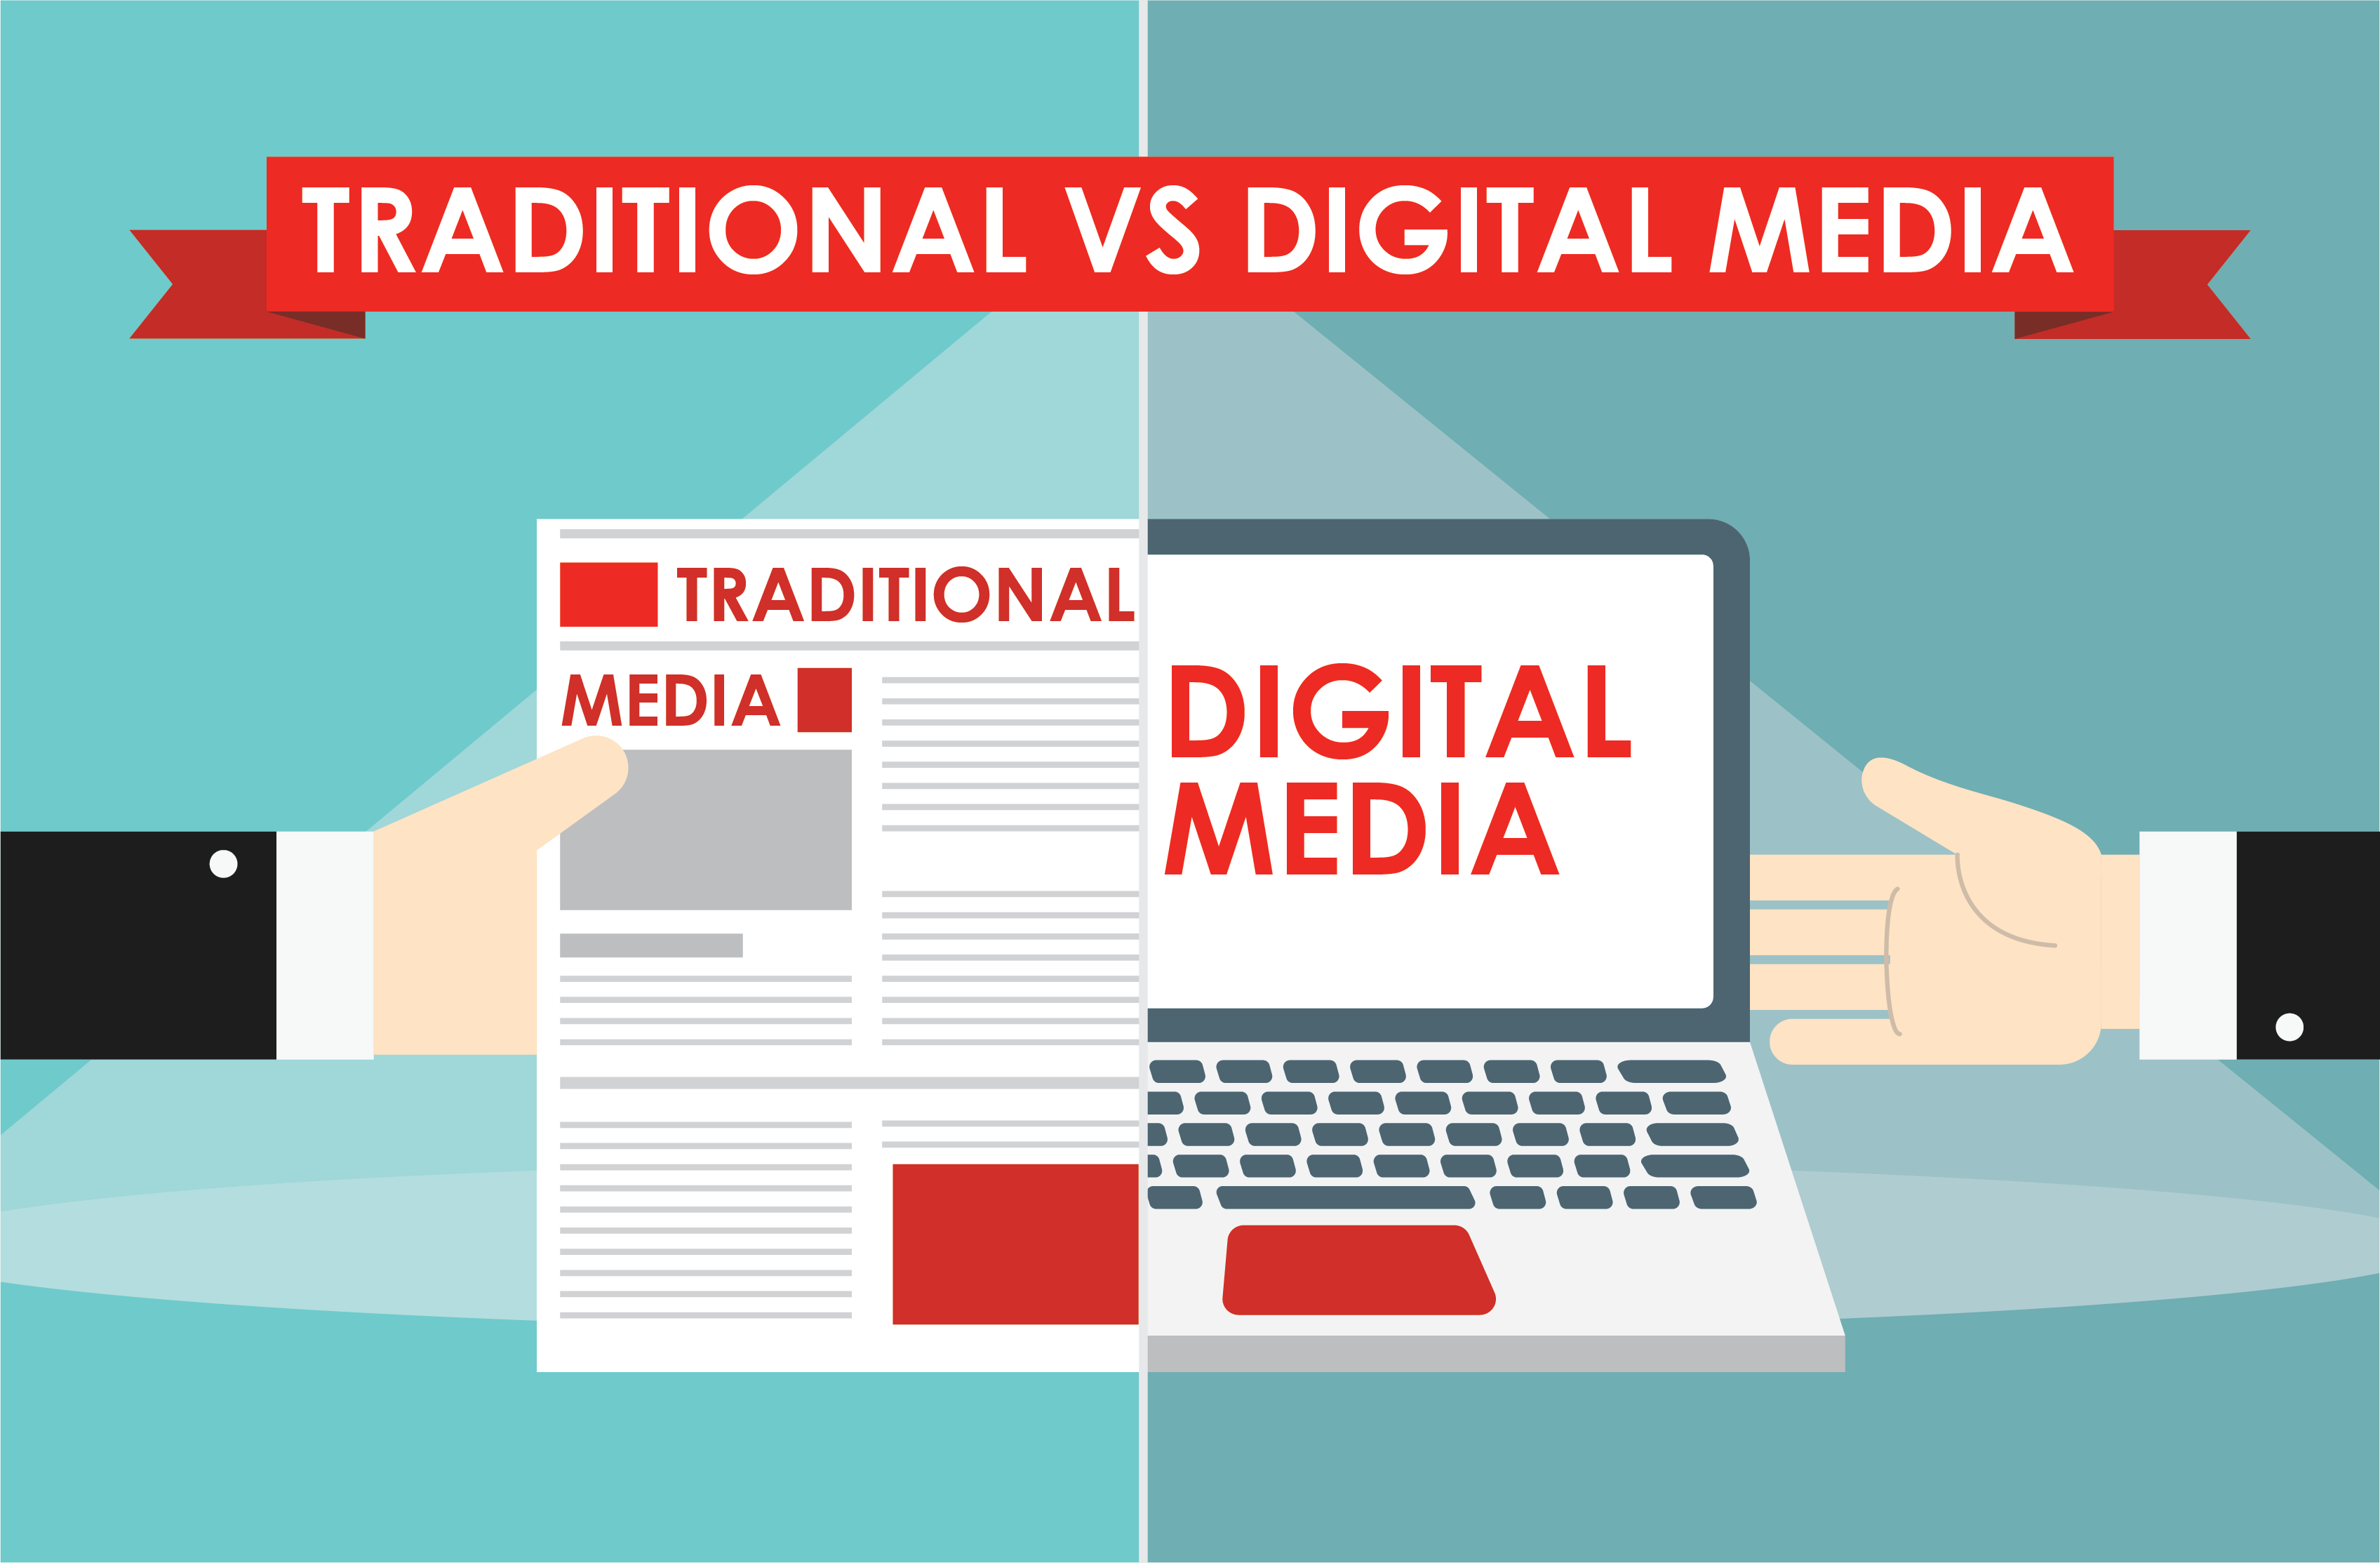 Can Digital Media Replace Traditional Media?